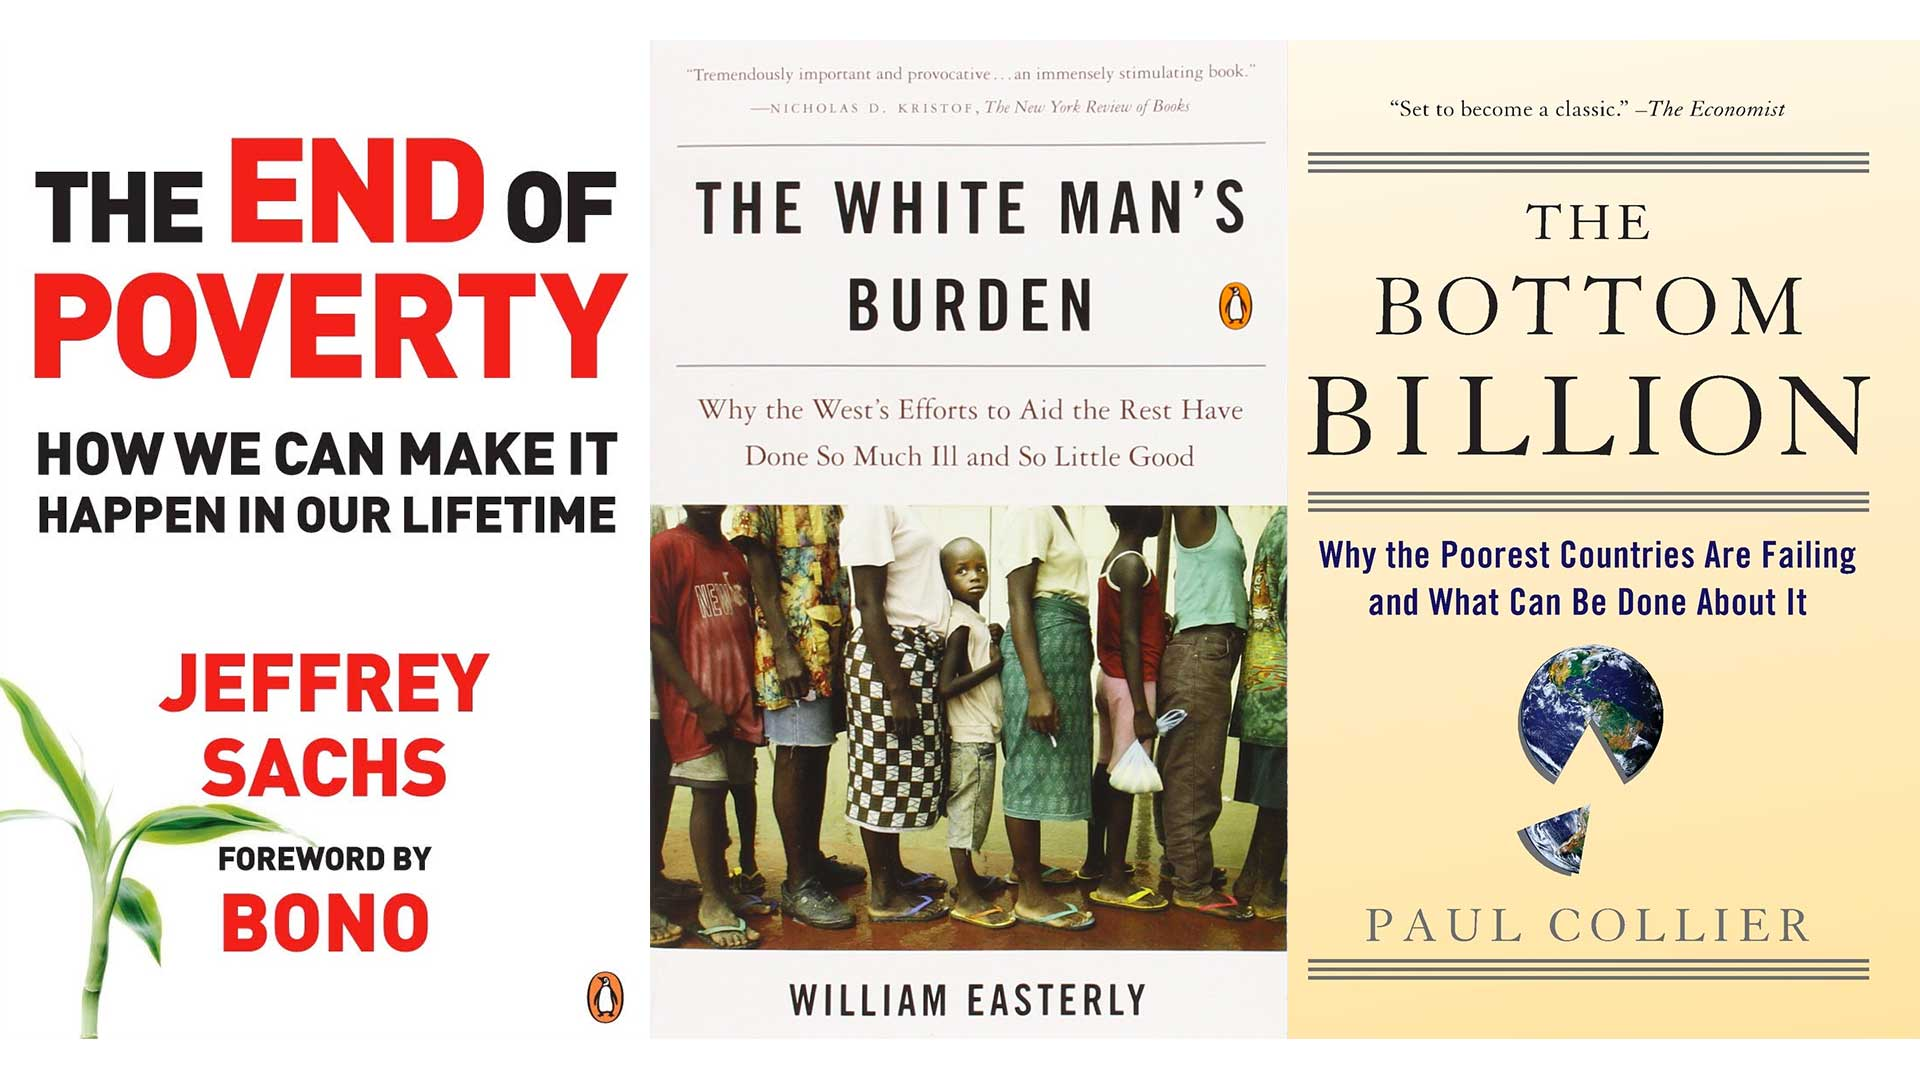 Three books: The End of Poverty by Jeffrey Sachs, The White Man's Burden by William Easterly, and The Bottom Billion by Paul Collier.